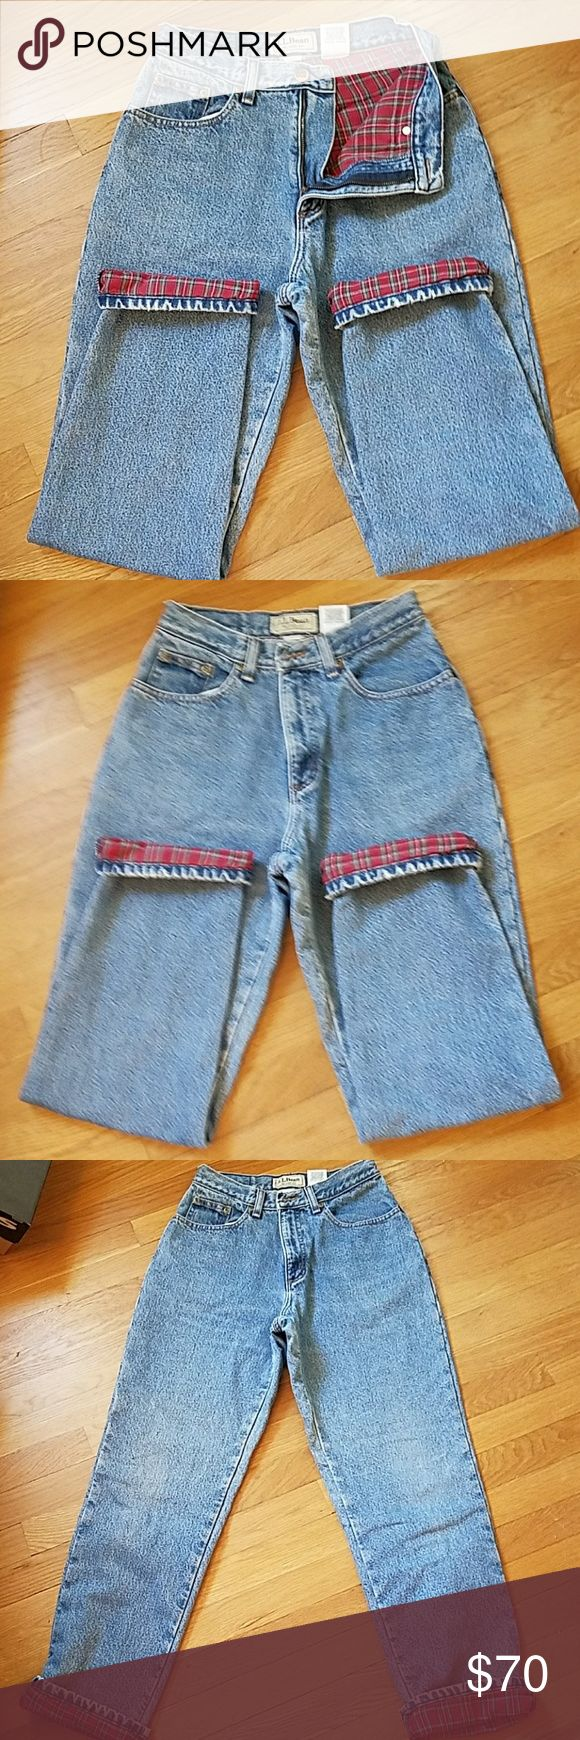 """L.L. Bean vintage flannel lined high waisted jeans Flannel lined jeans, wear cuffed or down, labeled 6 reg, hand measured waist of 27"""", 28.5"""" inseam, 100% cotton, 11"""" inseam L.L. Bean Jeans"""